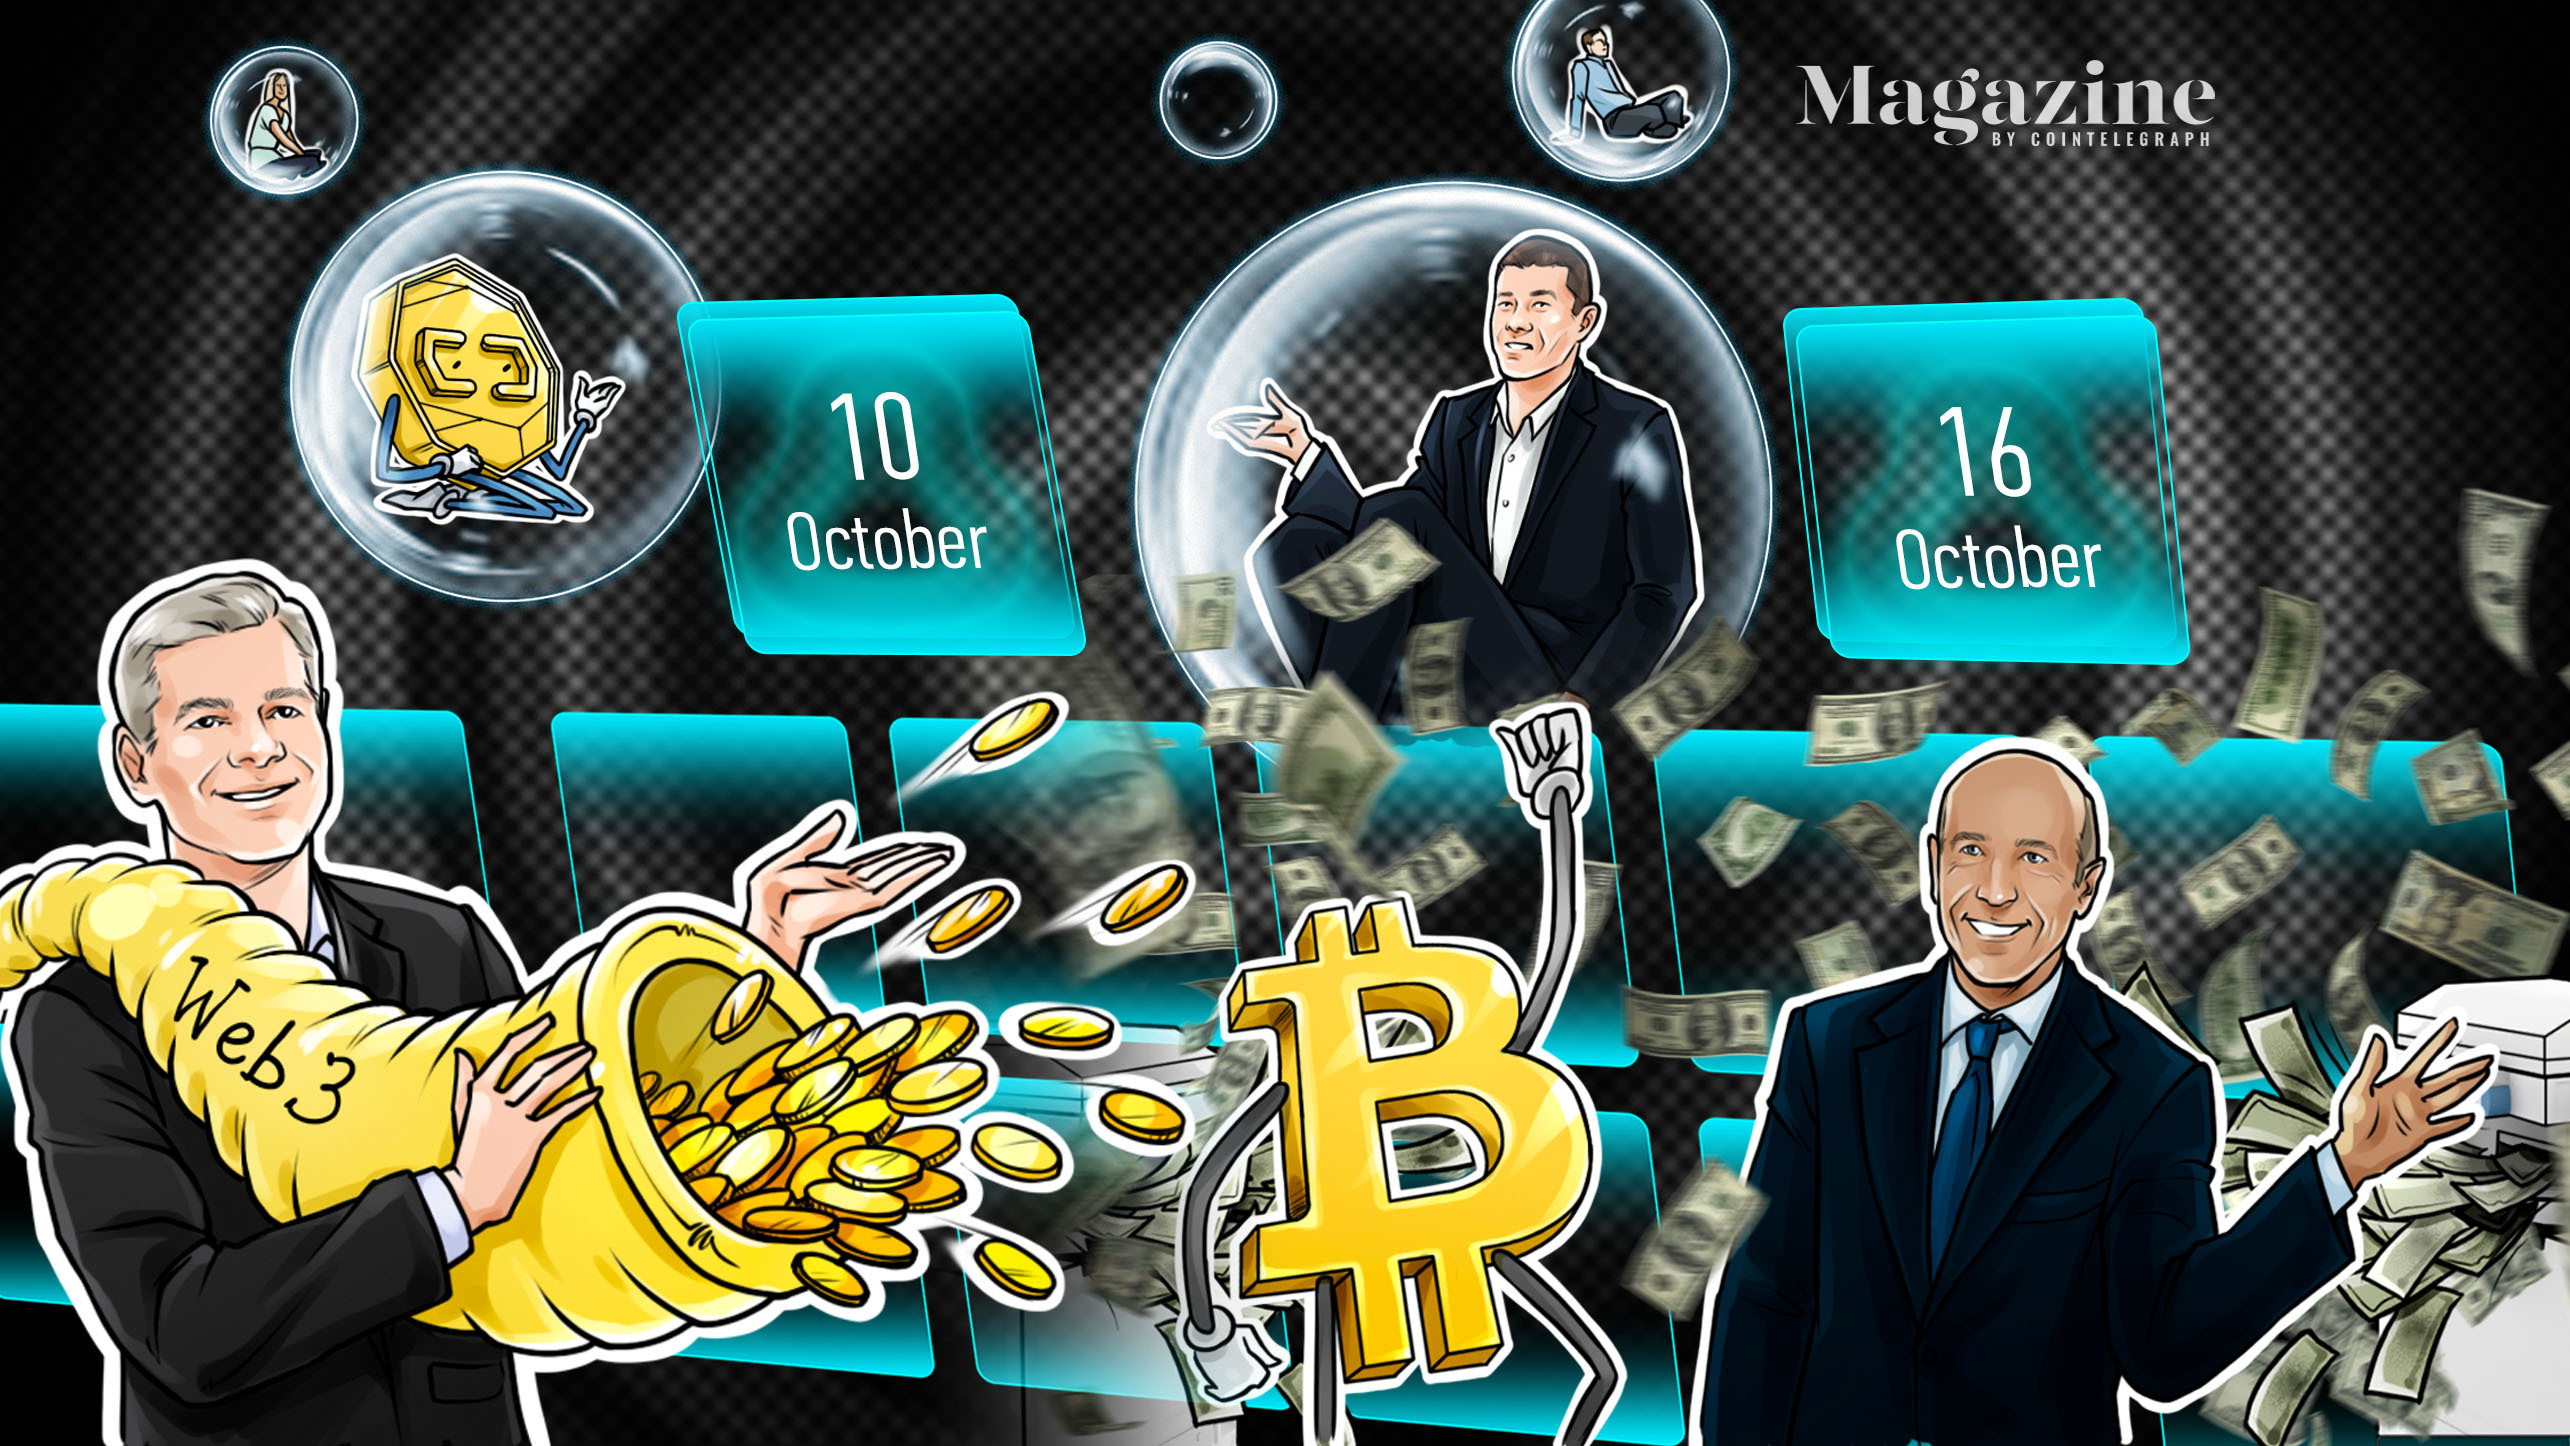 Binance launches B BSC fund, BTC futures ETF approval could arrive soon, and Celsius raises 0M: Hodler's Digest, Oct. 10-16